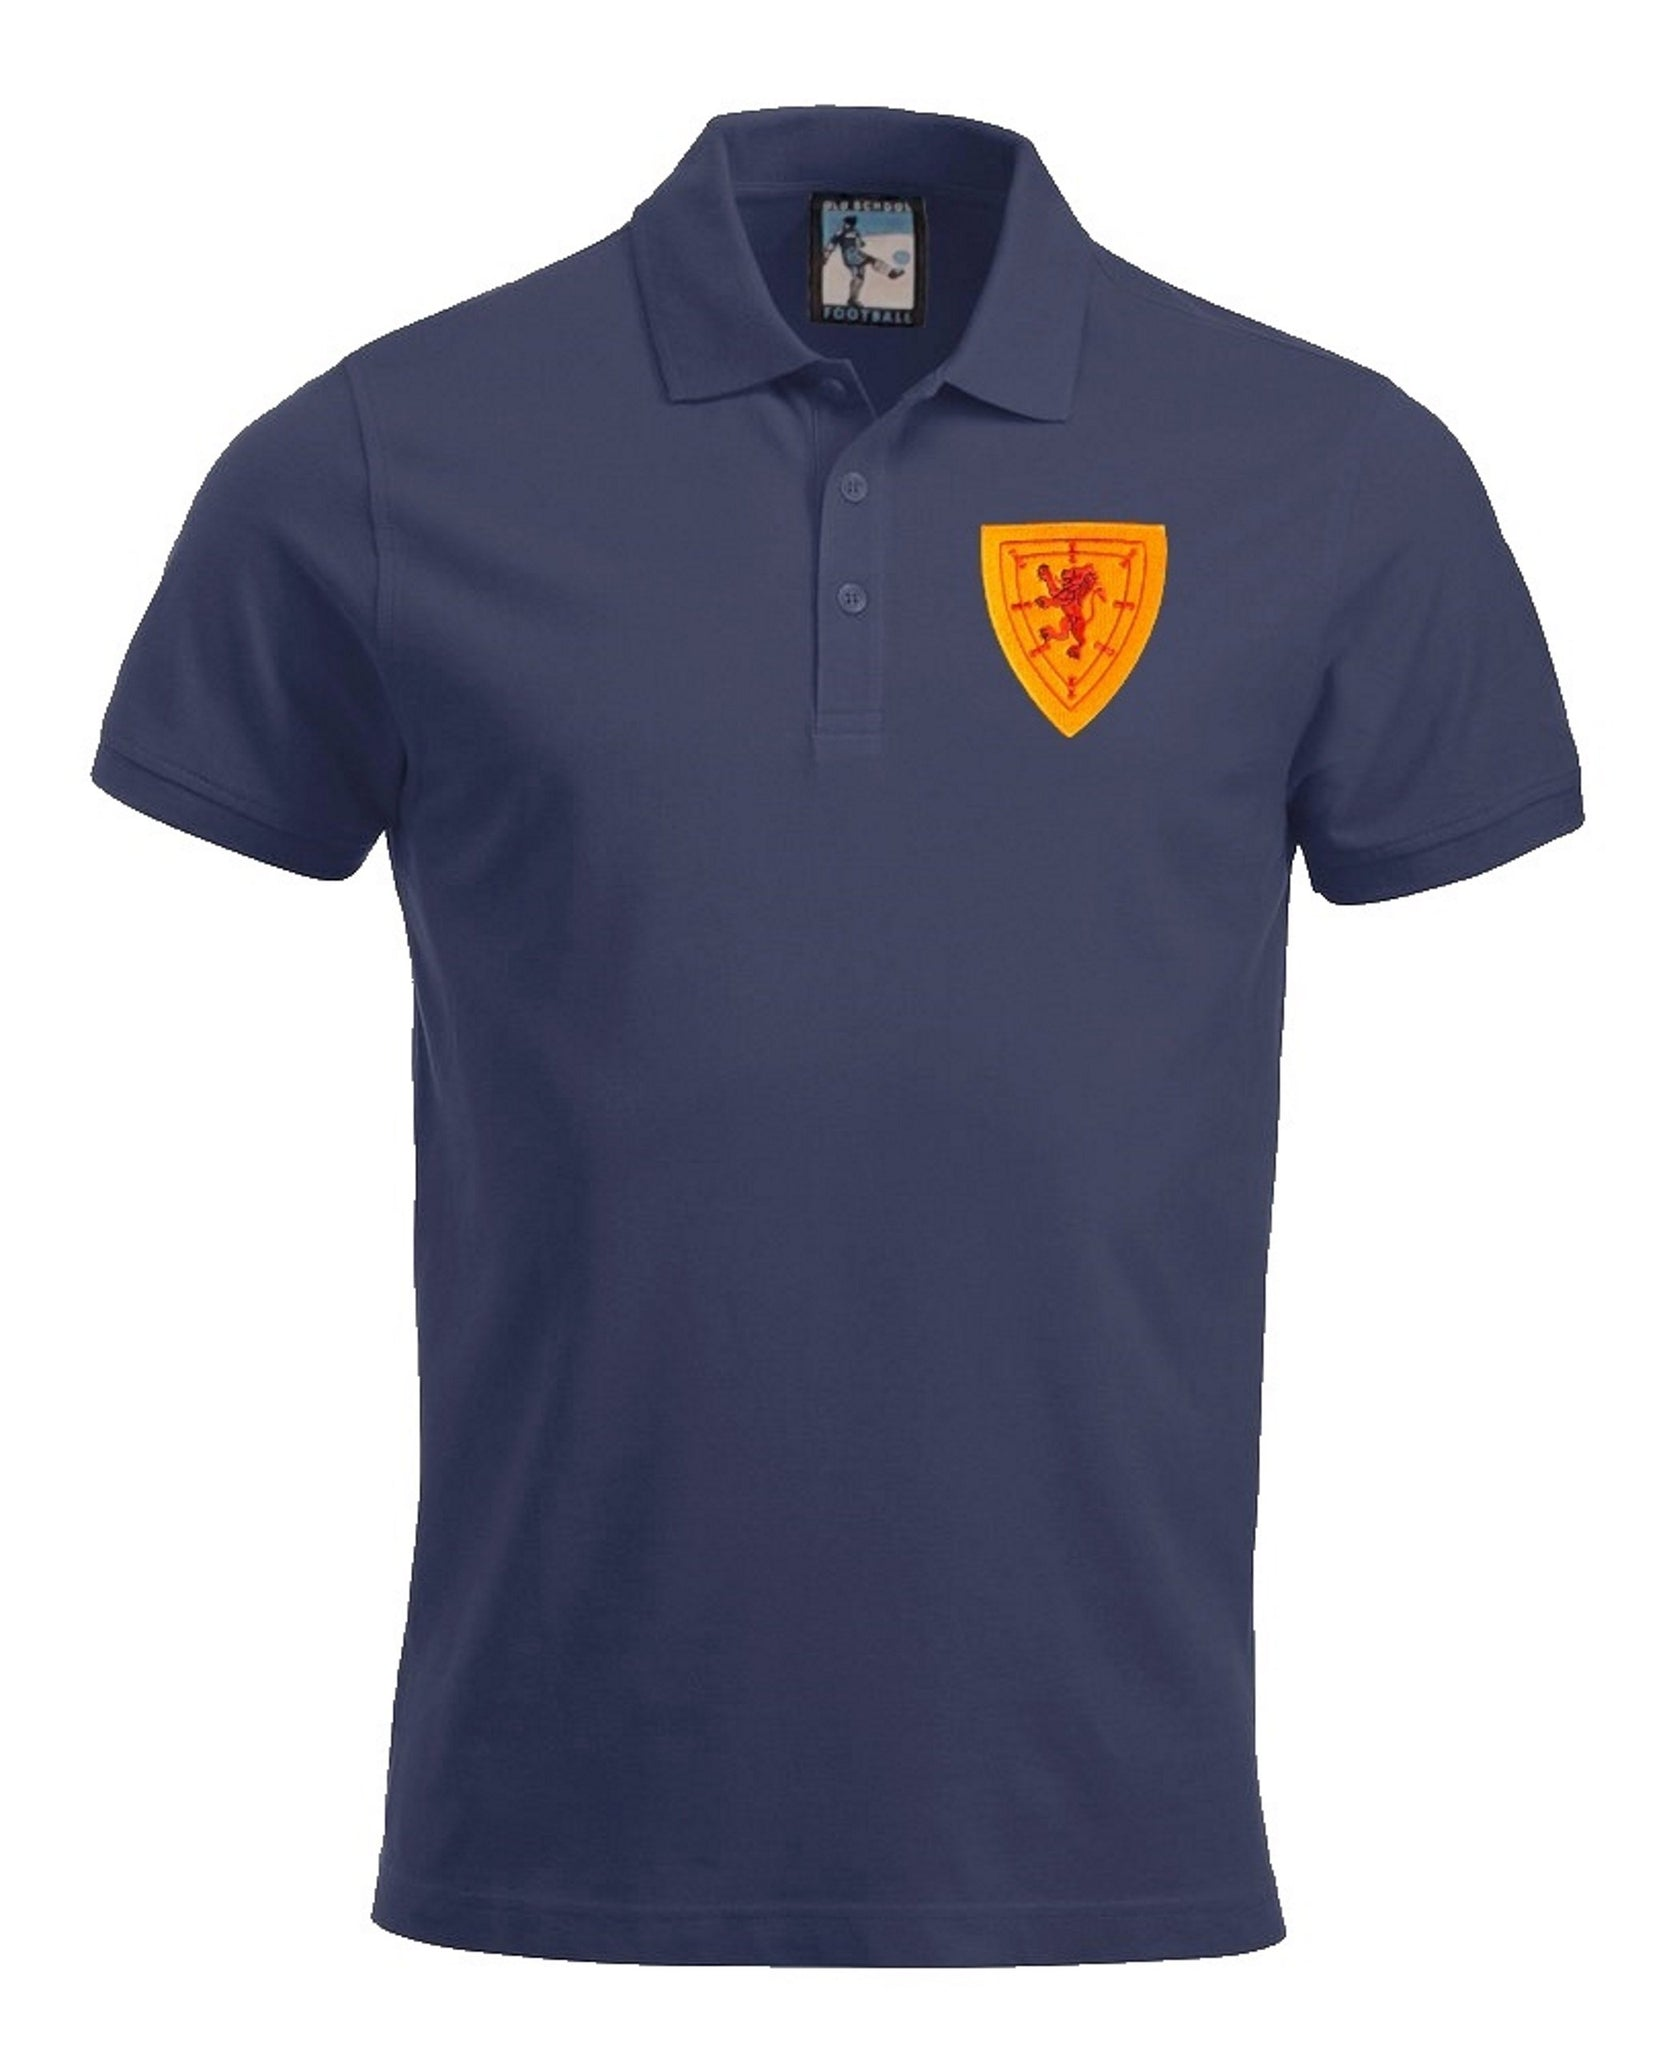 Scotland Retro Football Polo Shirt - Polo